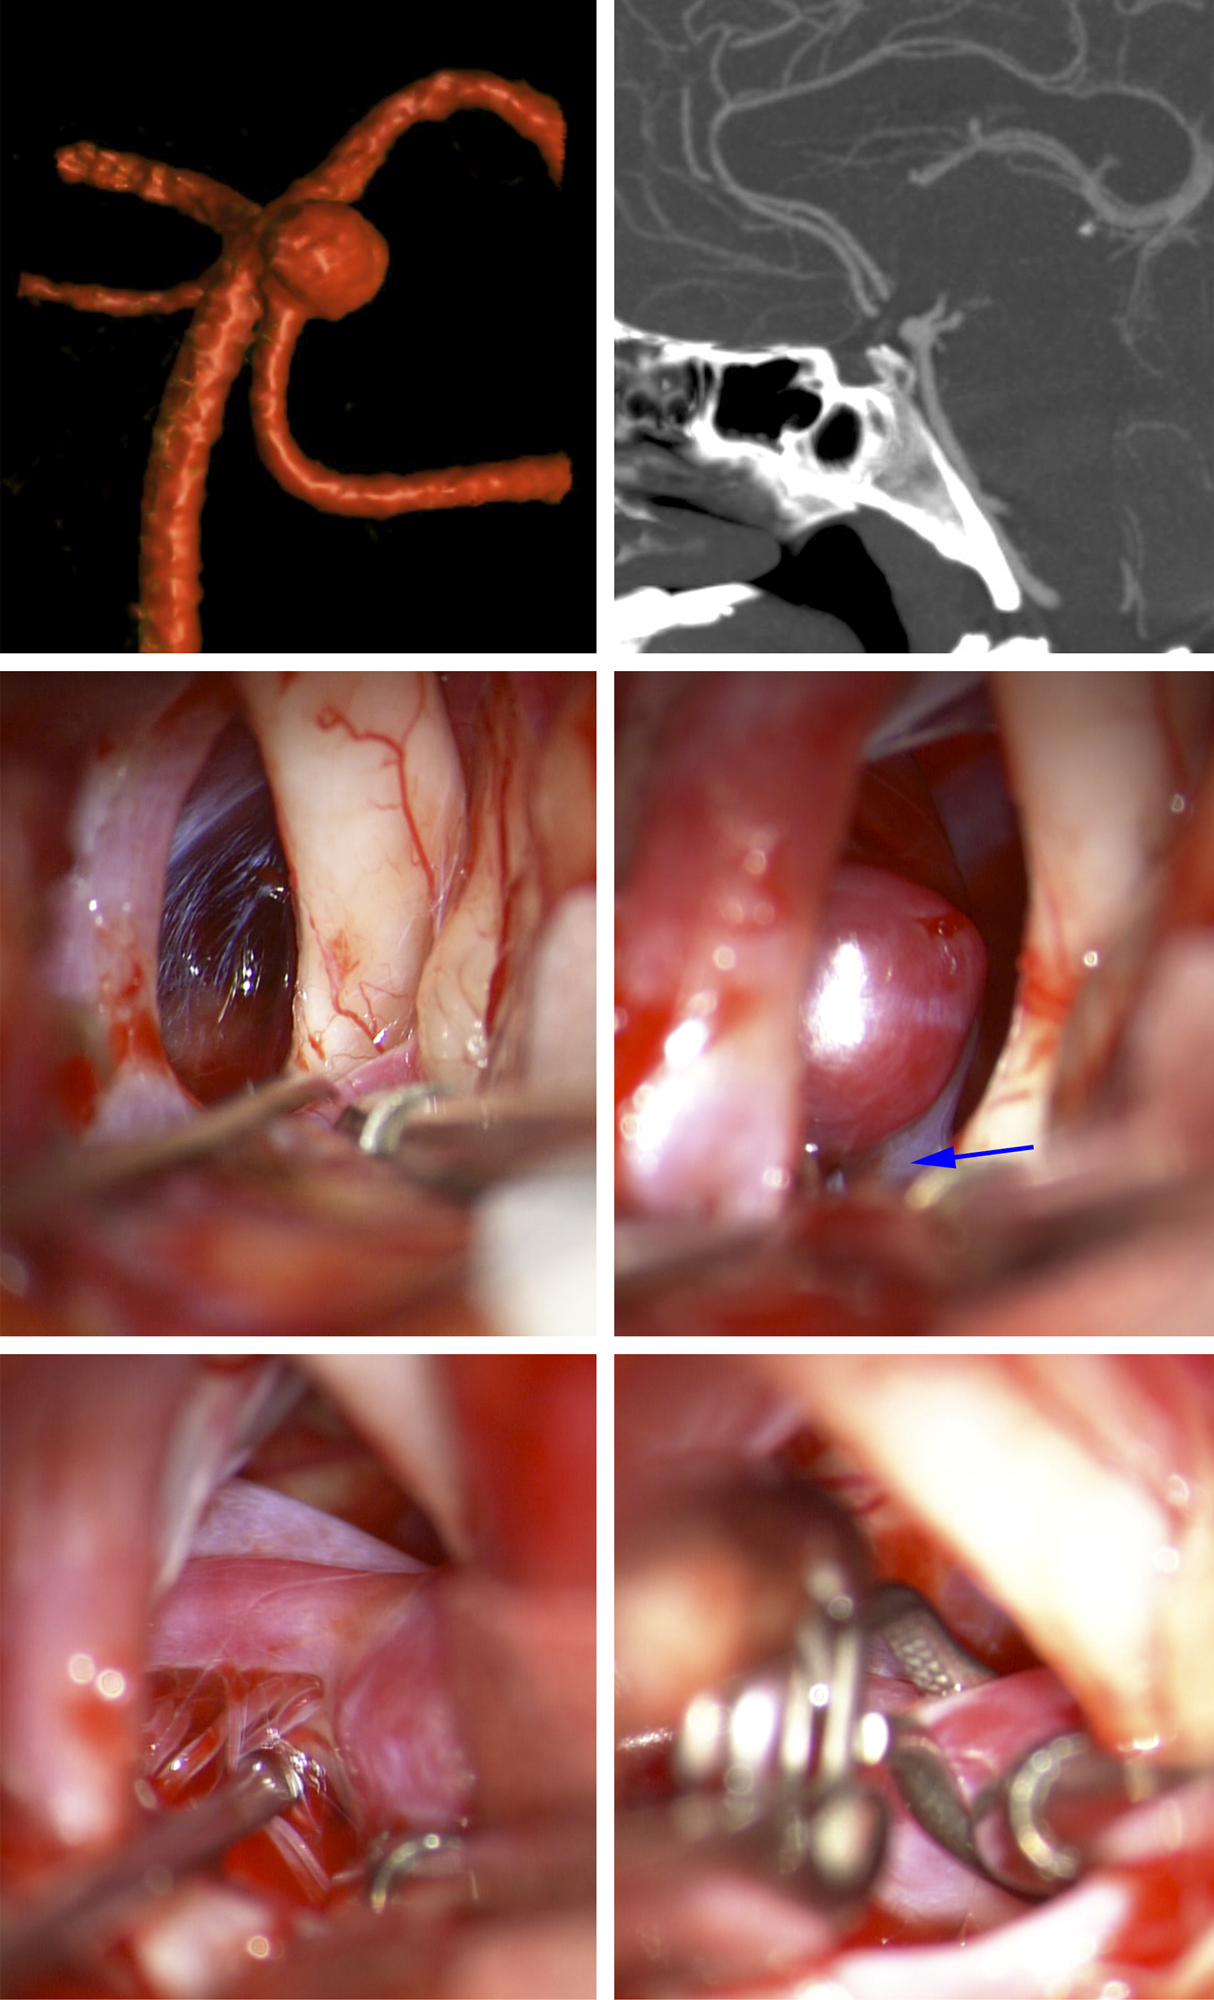 Figure 10: A relatively classic SCA aneurysm was noted on a sagittal CTA and 3D angiogram (top row). Note the location of the aneurysm neck just below the posterior clinoid process. Proximal vascular control was expected to be a challenge and unreliable. A pterional craniotomy explored the aneurysm; the subfrontal brain was mobilized and the dome was discovered within the interpeduncular cisterns (second row, the blue arrow marks the origin of the PCA). The perforators were gently dissected away from the aneurysm neck while the aneurysm was slightly deflated via temporary inflation of a balloon endovascularly within the basilar artery. Next, an angled curved clip ligated the aneurysm effectively (third row).